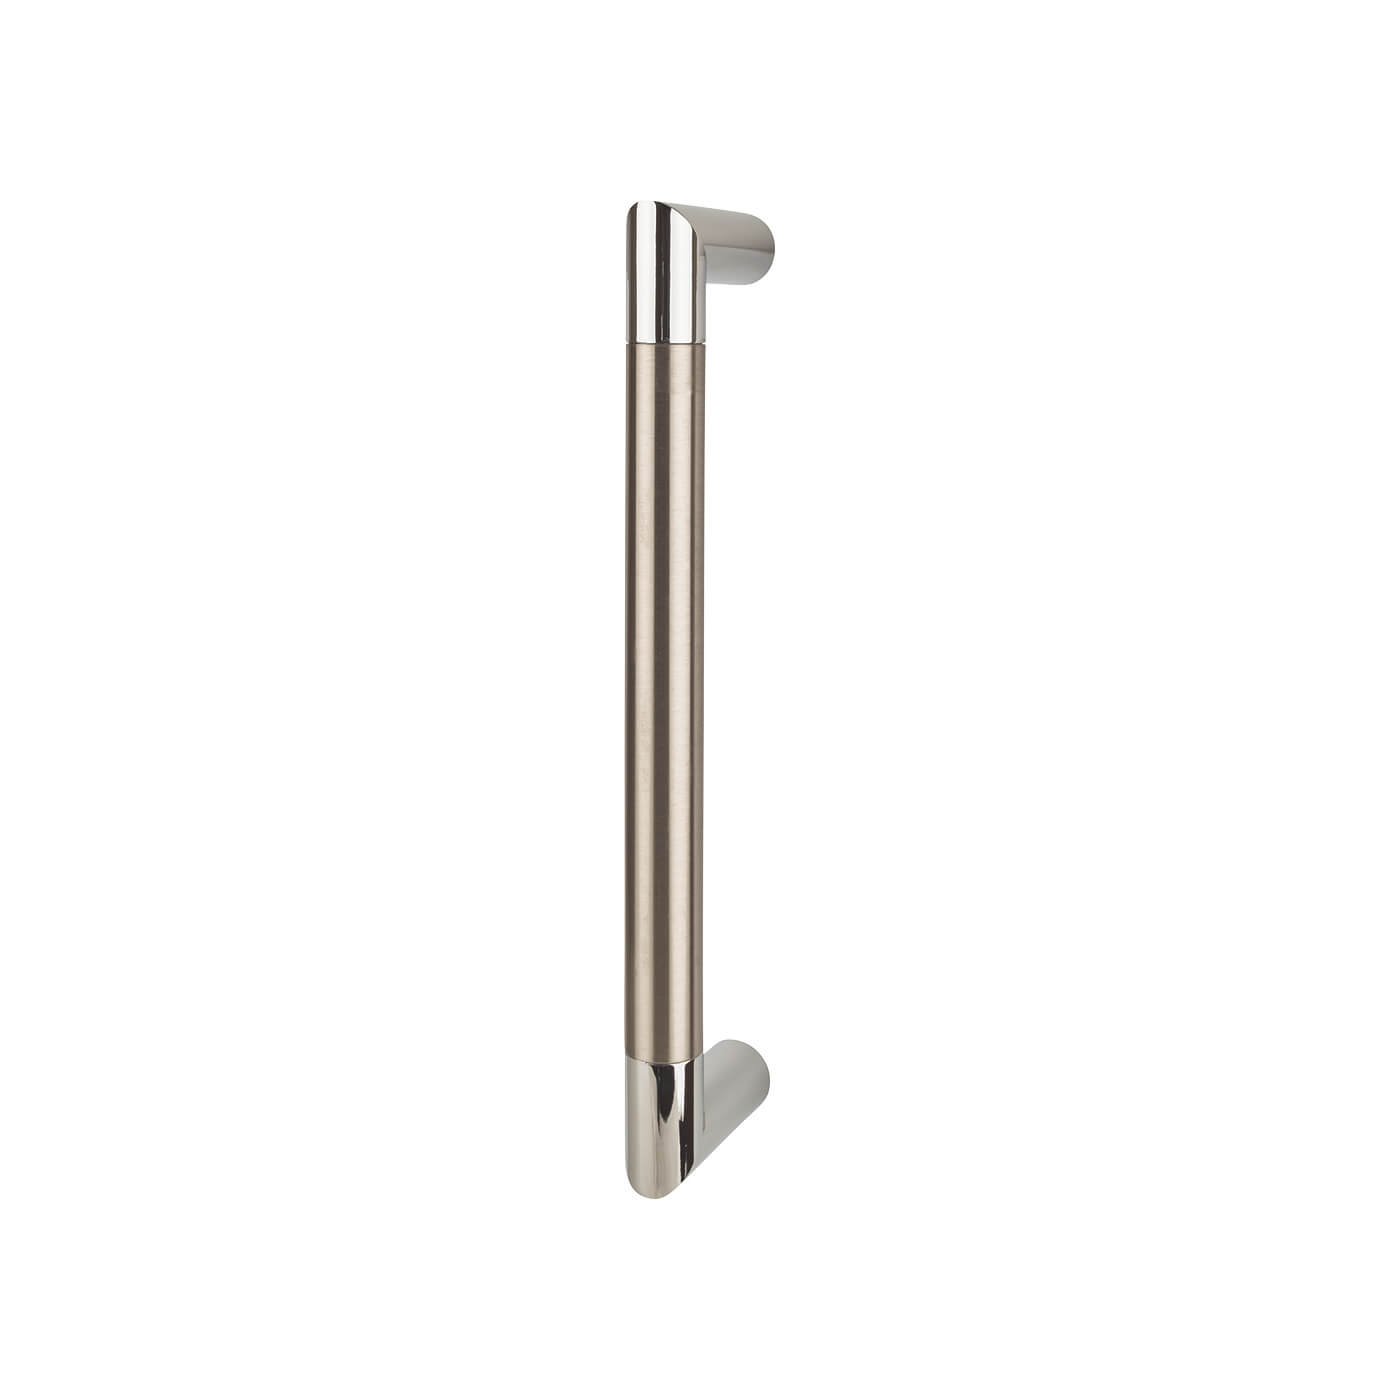 Serrozetta Trend Pull Handle - 245 x 19mm - Polished Chrome / Satin Nickel)